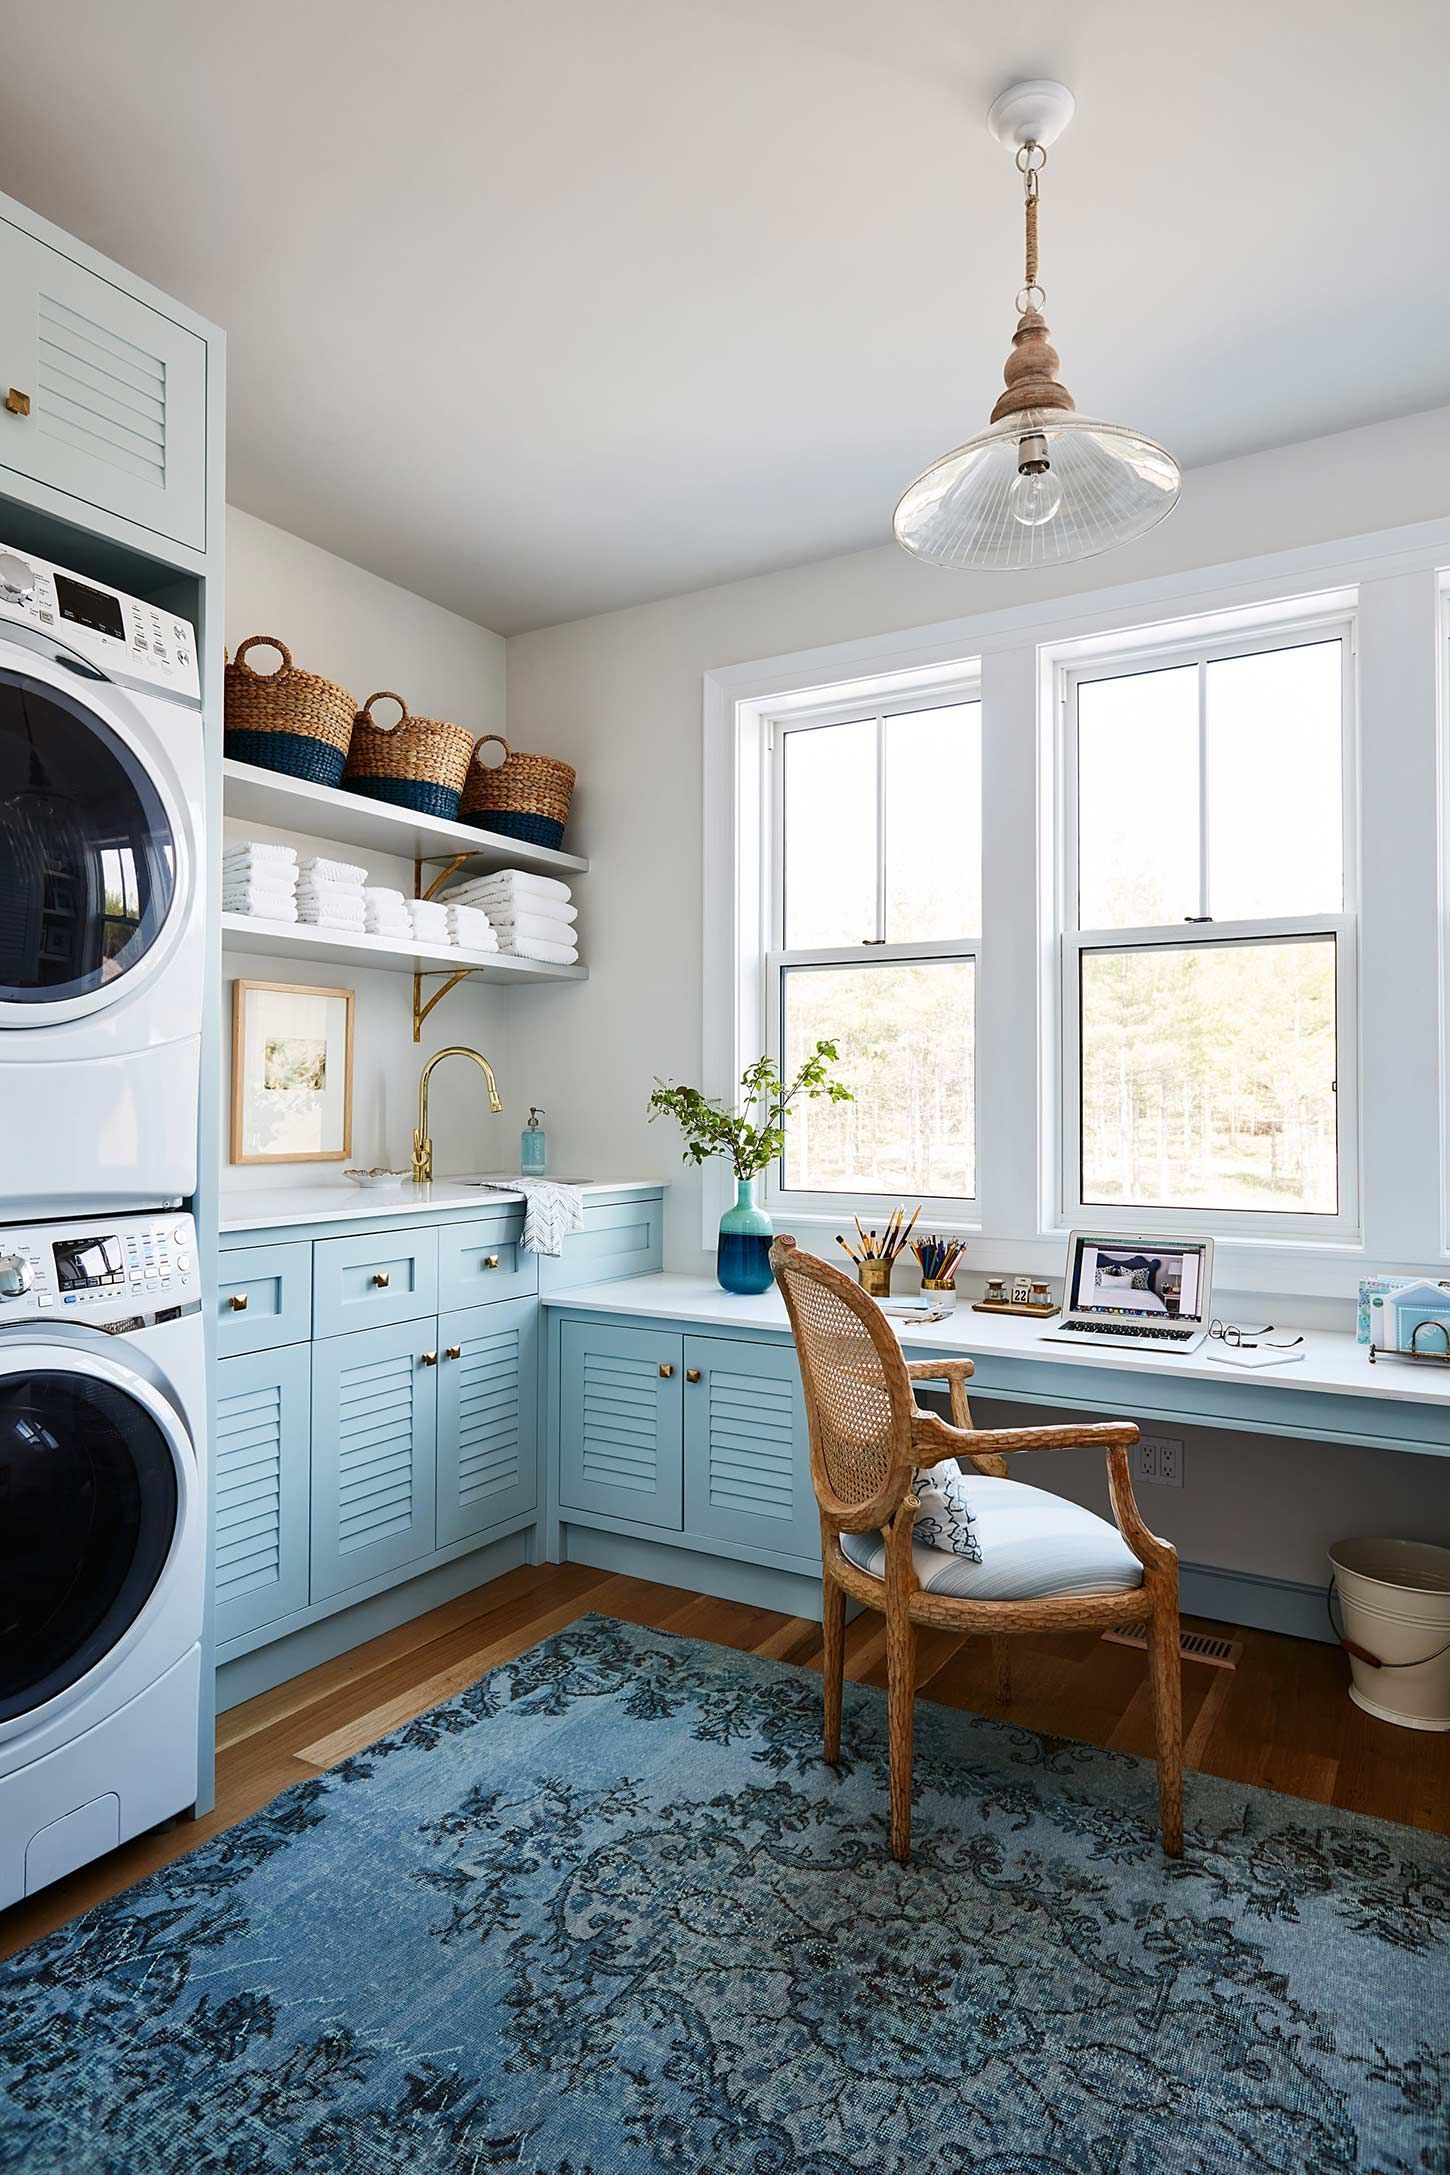 Laundry Room By Terriyager Sarah Off The Grid - Washer